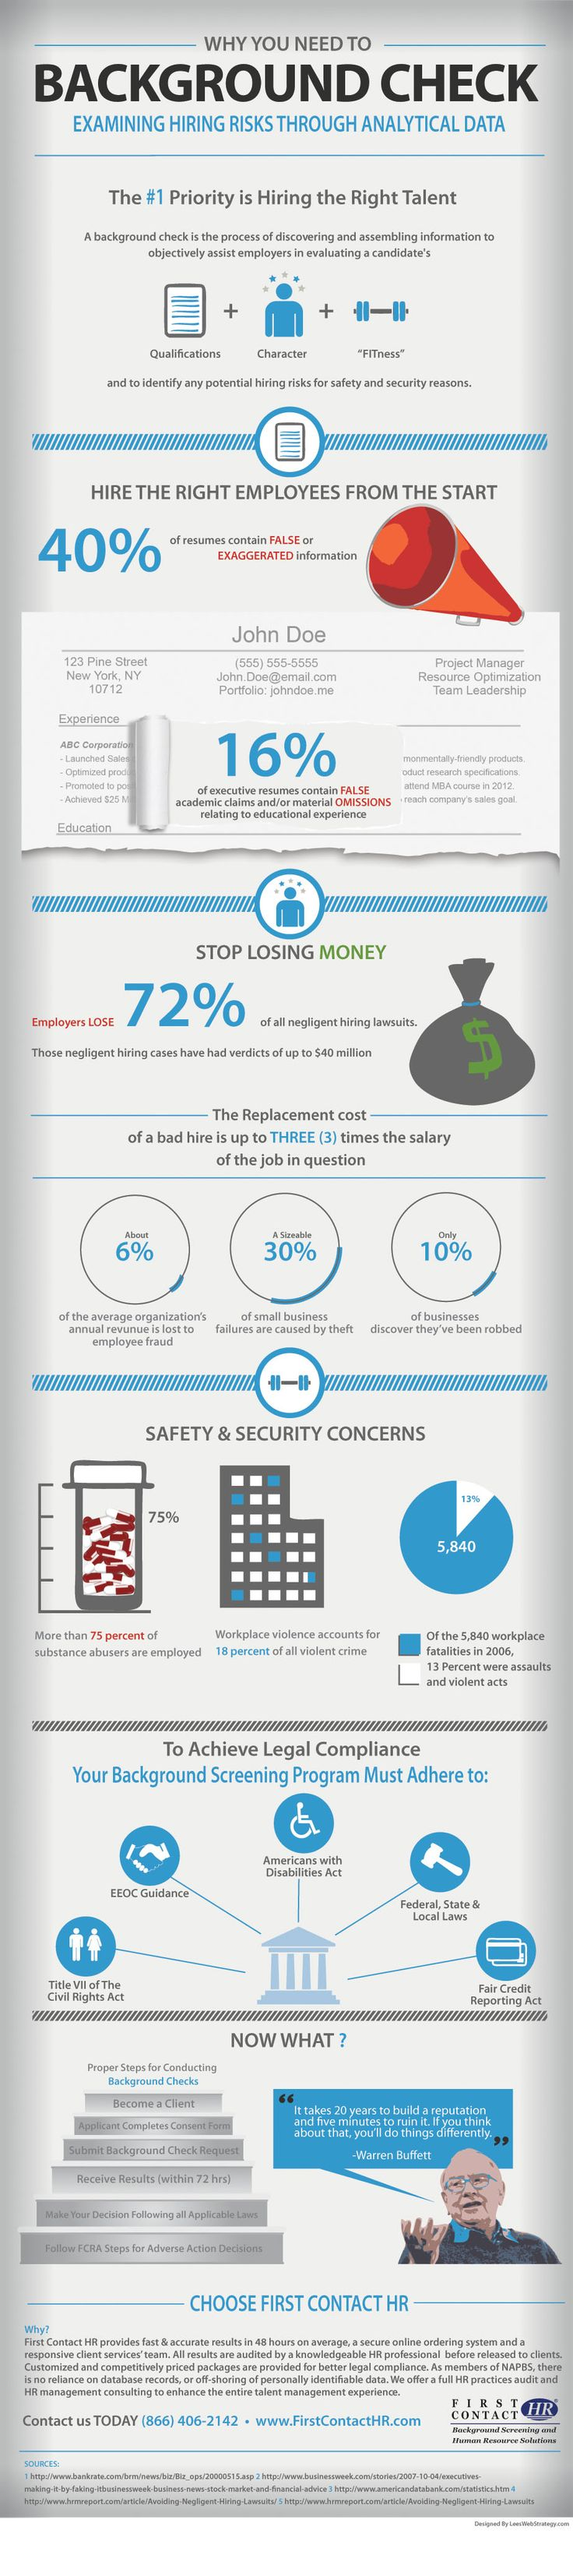 Why You Need To Background Check - First Contact HR is a leader in the background screening an human resource solutions industry. This infographic examines the hiring risks associated with hiring the wrong employee.